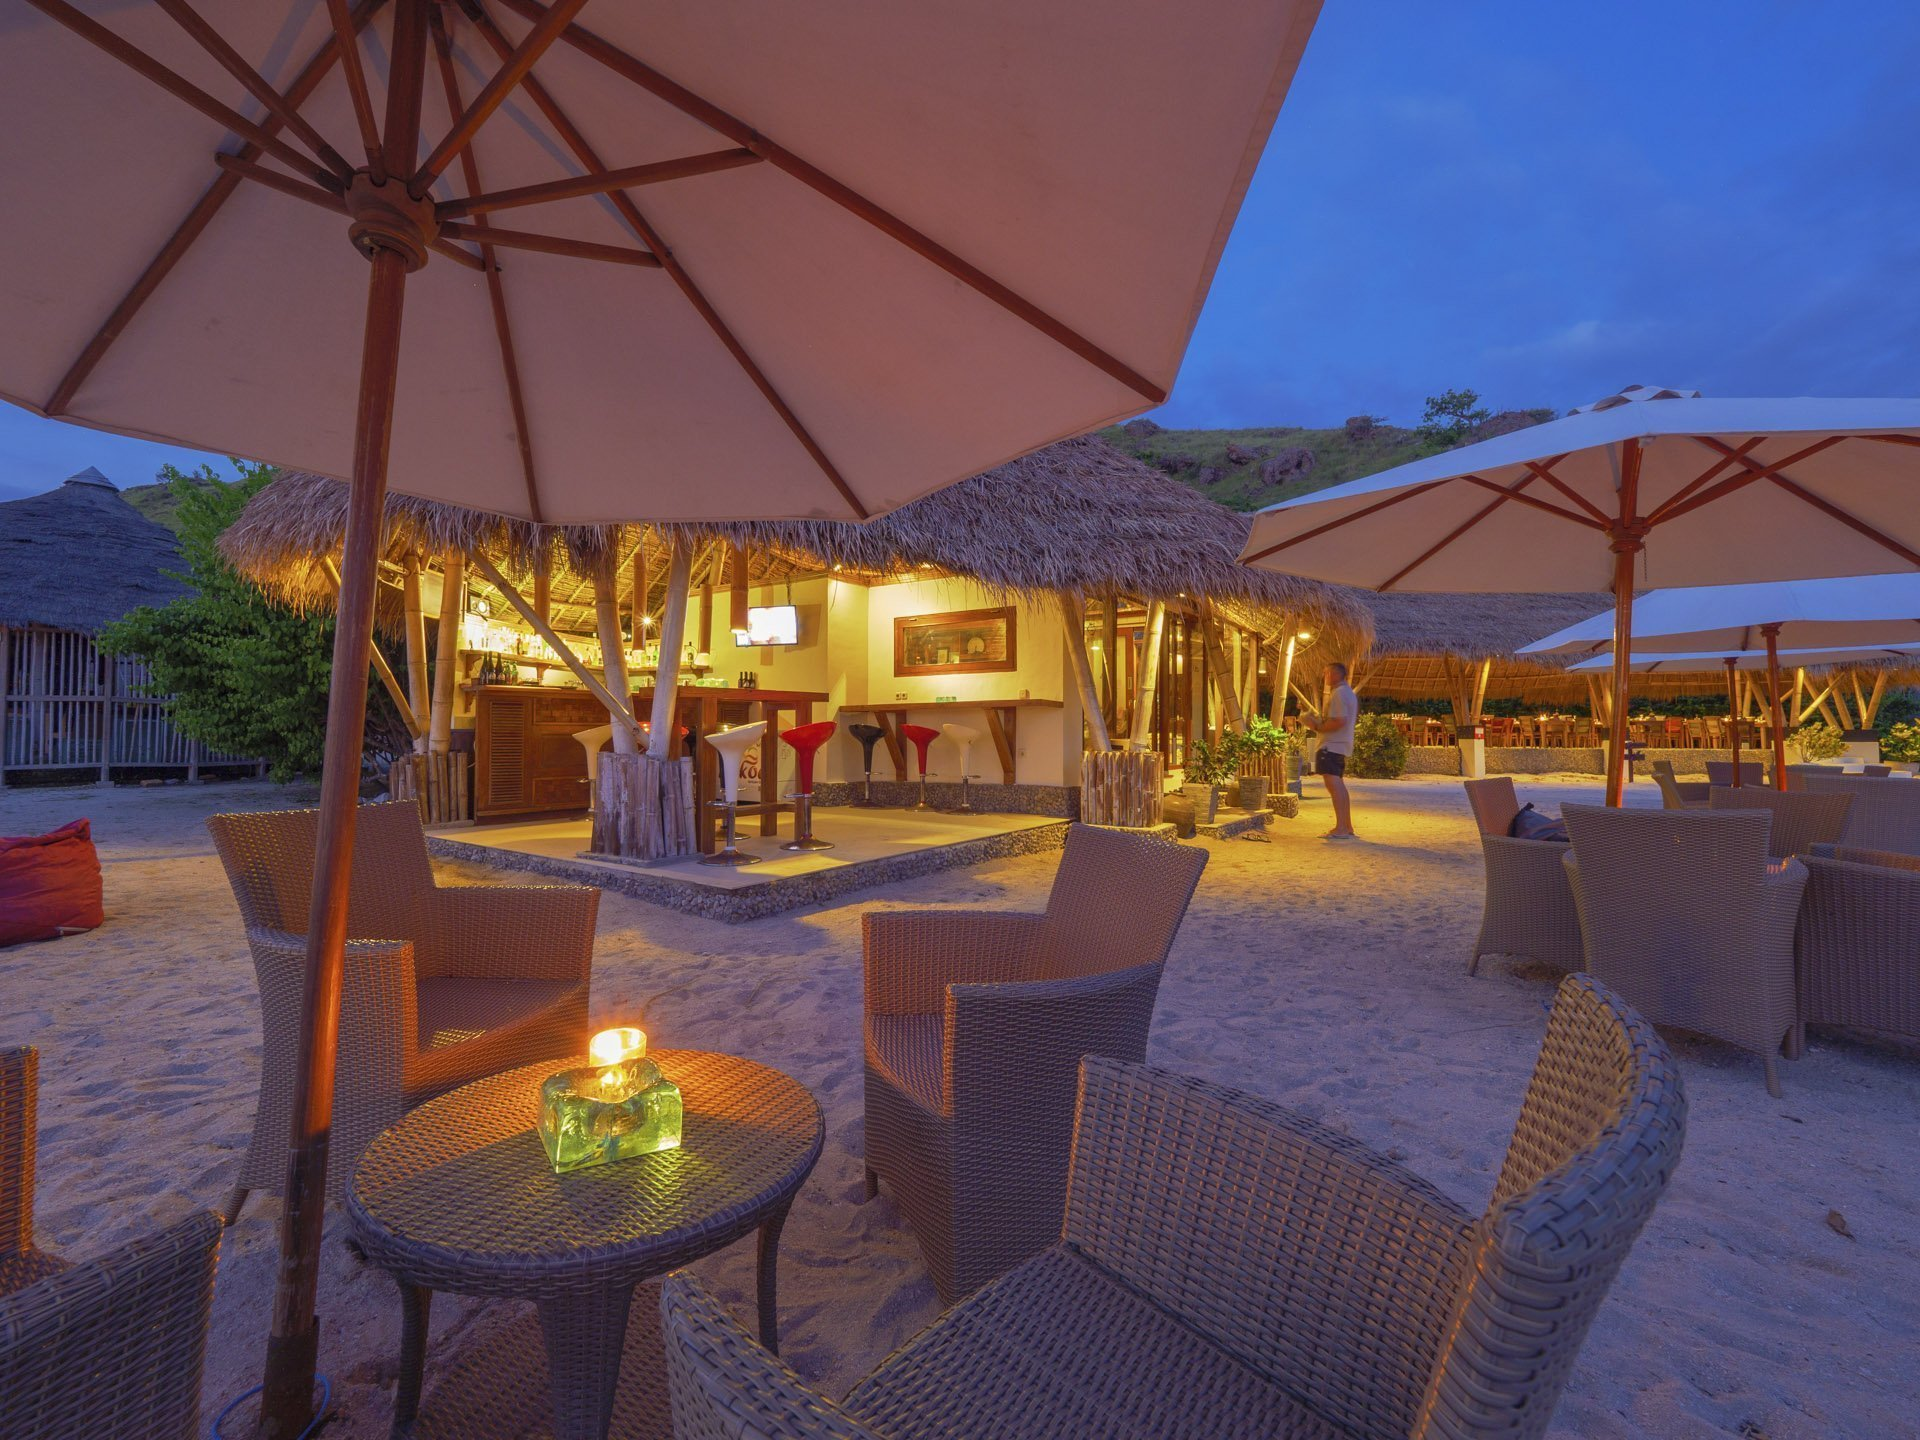 Komodo Resort Beach Bar